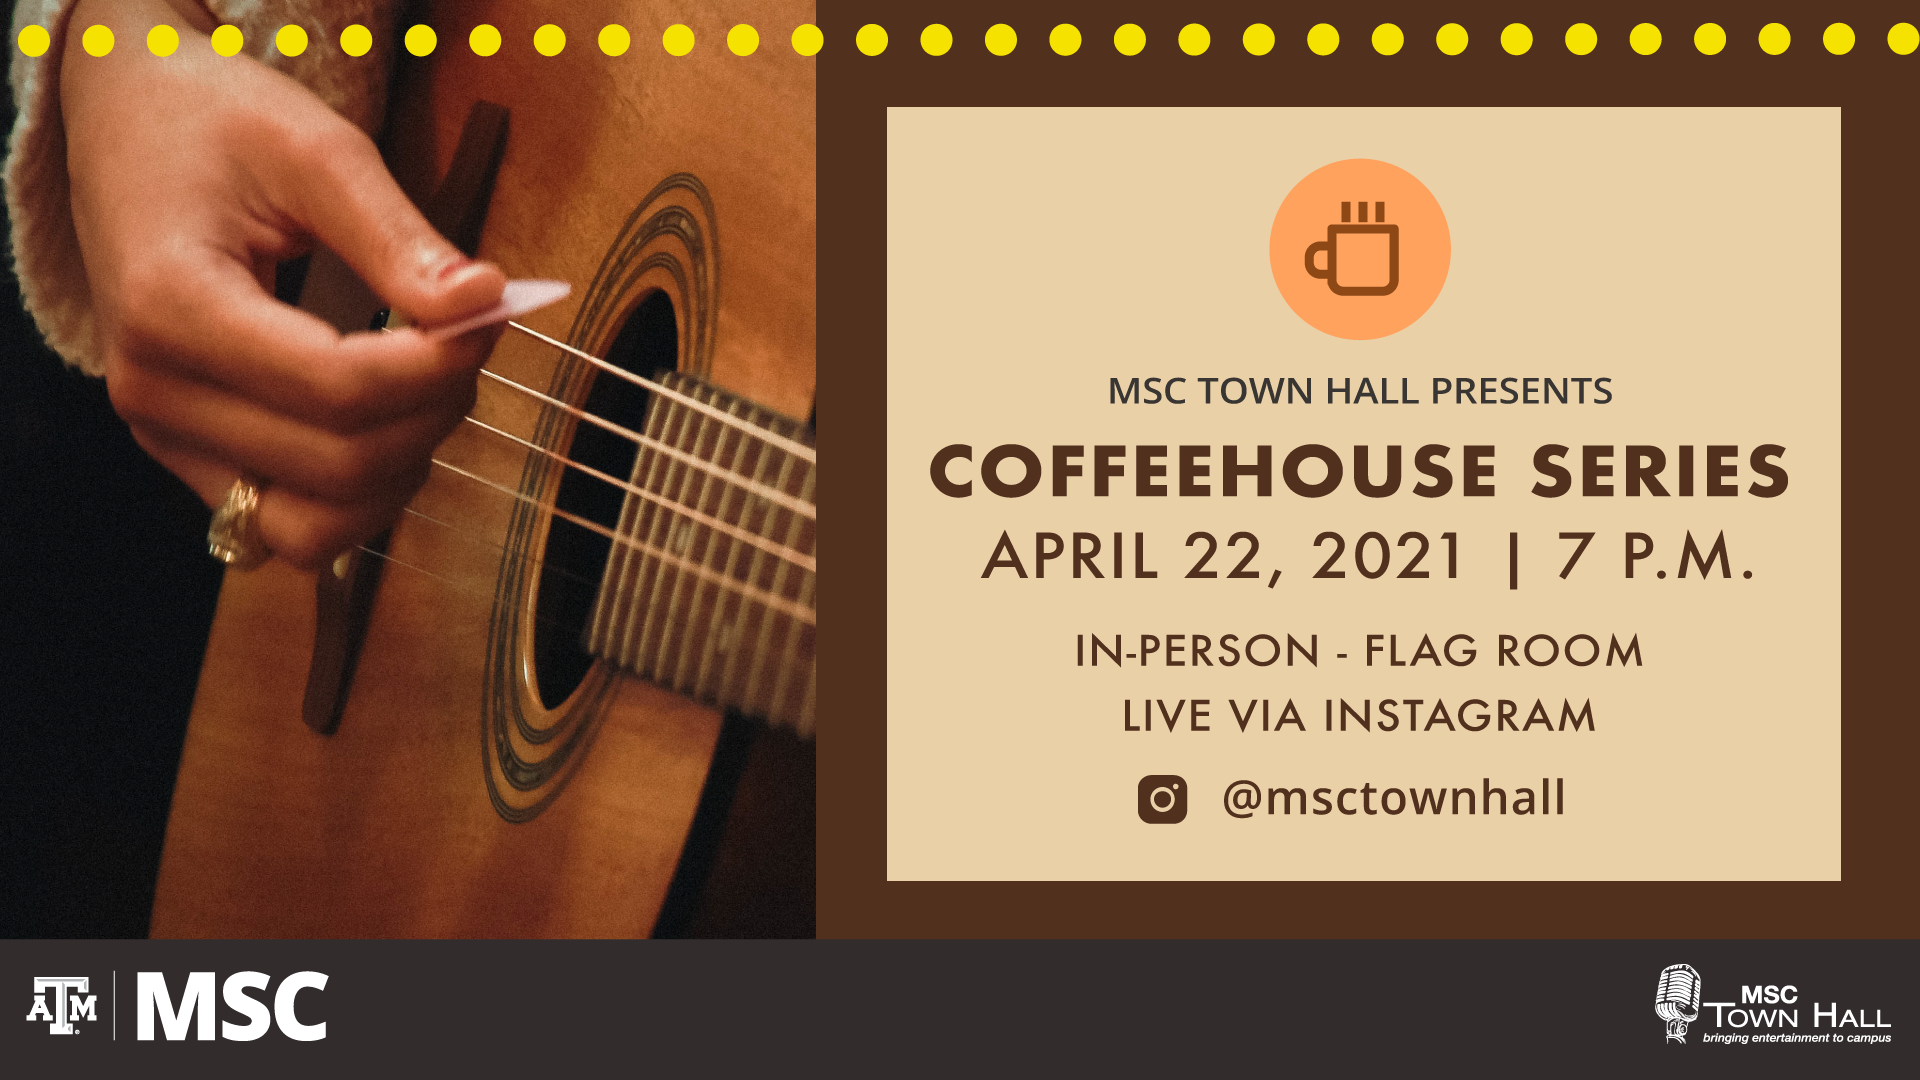 MSC Town Hall Presents CoffeeHouse Series on April 22, 2021 at 7 p.m. In-Person at the Flag Room and Live via Instagram @msctownhall